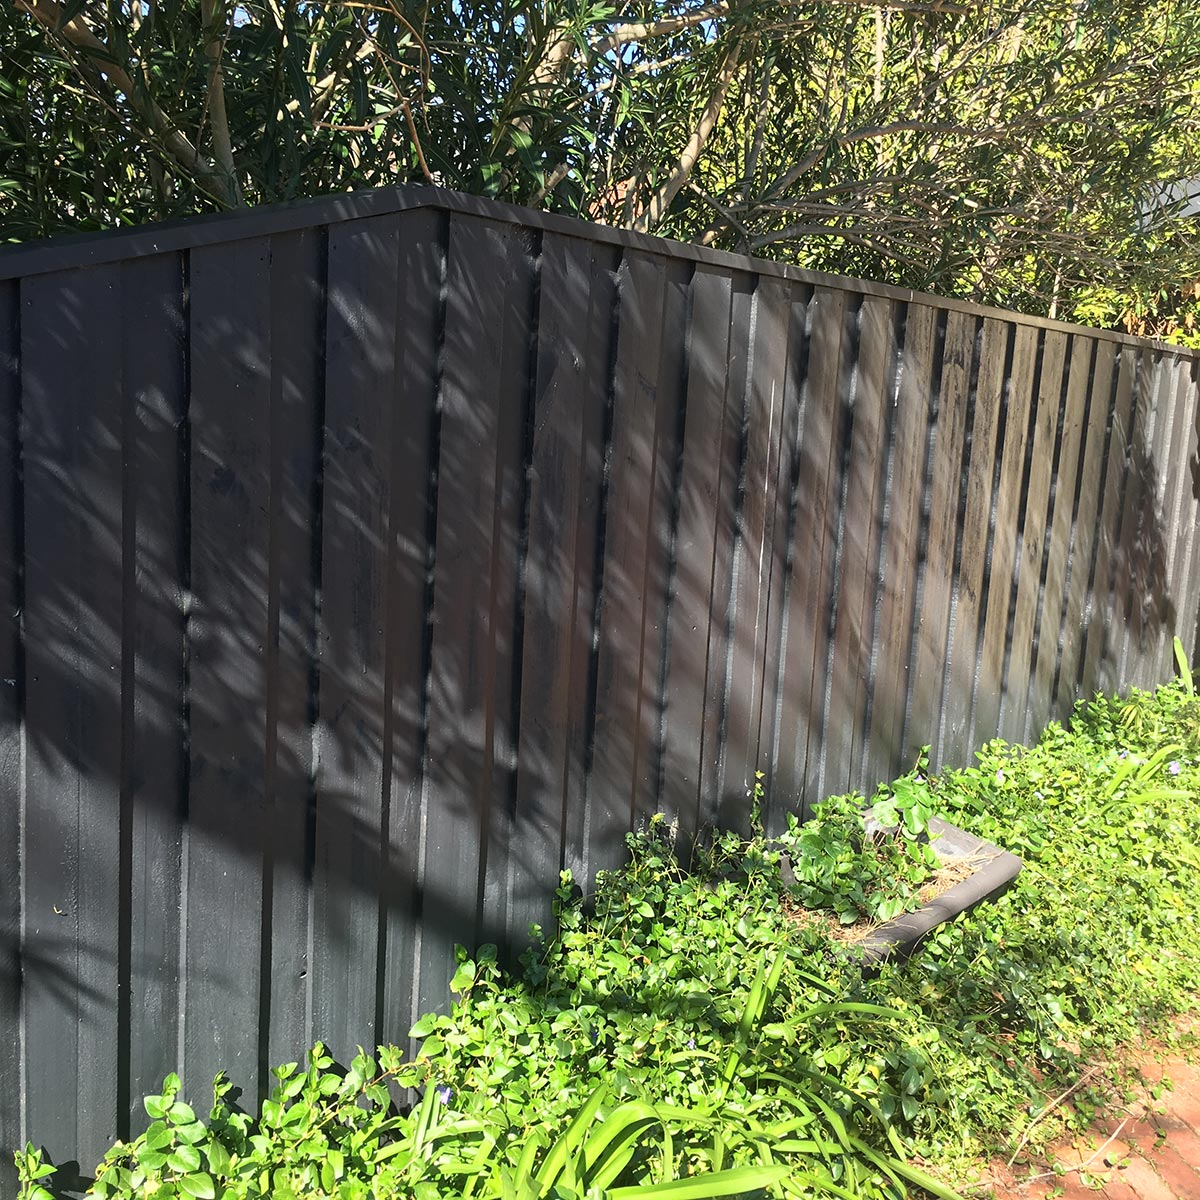 Toorack Gardens Treated Pine Paling Fence Pic1 FG small